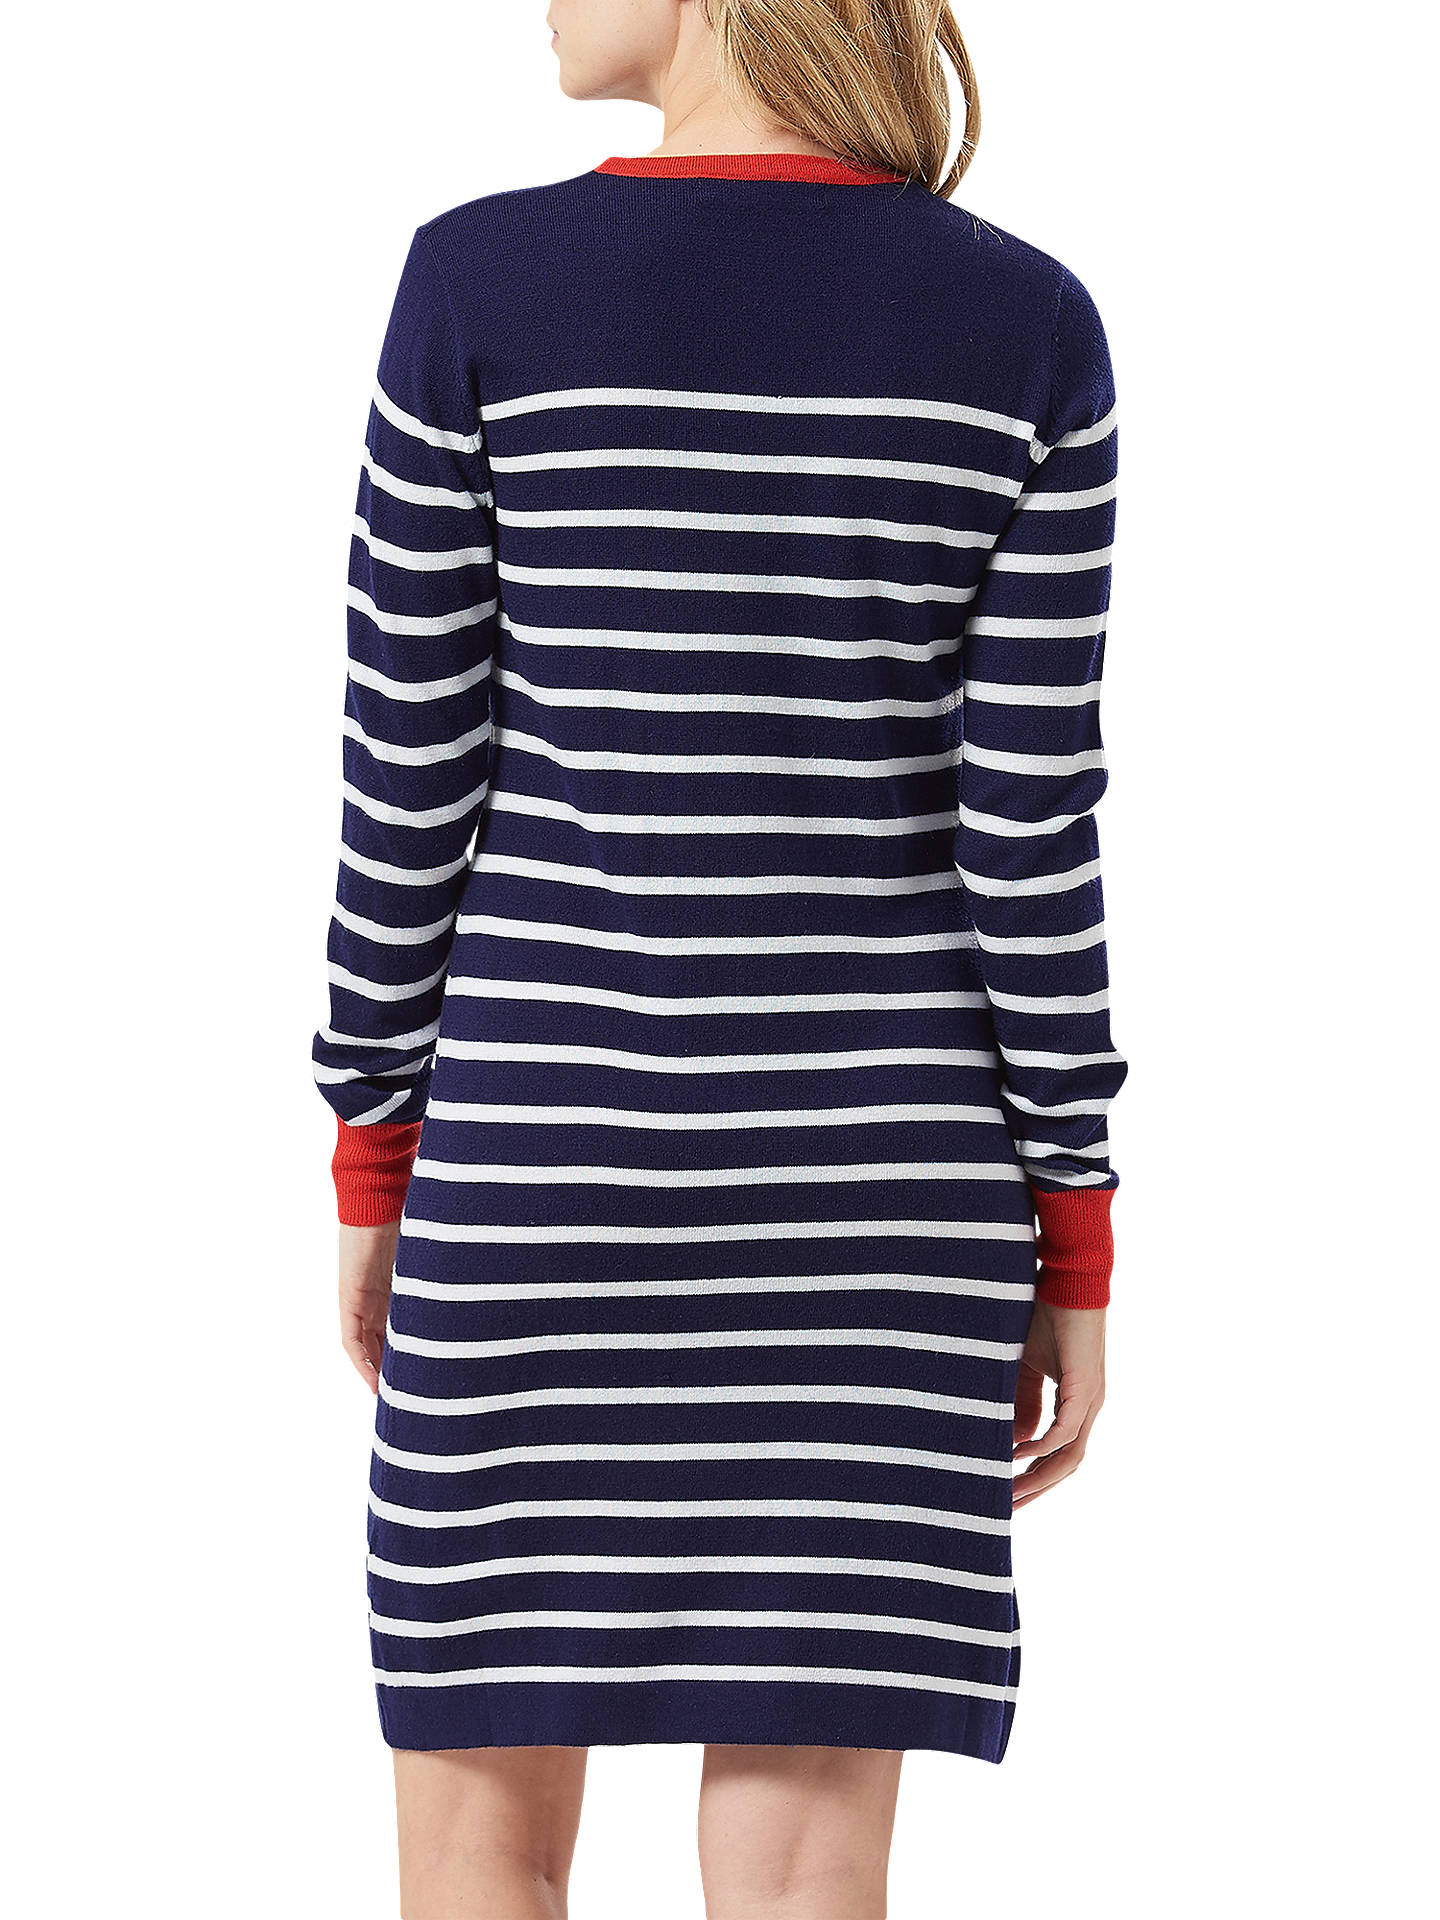 Buy Sugarhill Brighton Evie Hearts Dress, Navy/White, 8 Online at johnlewis.com